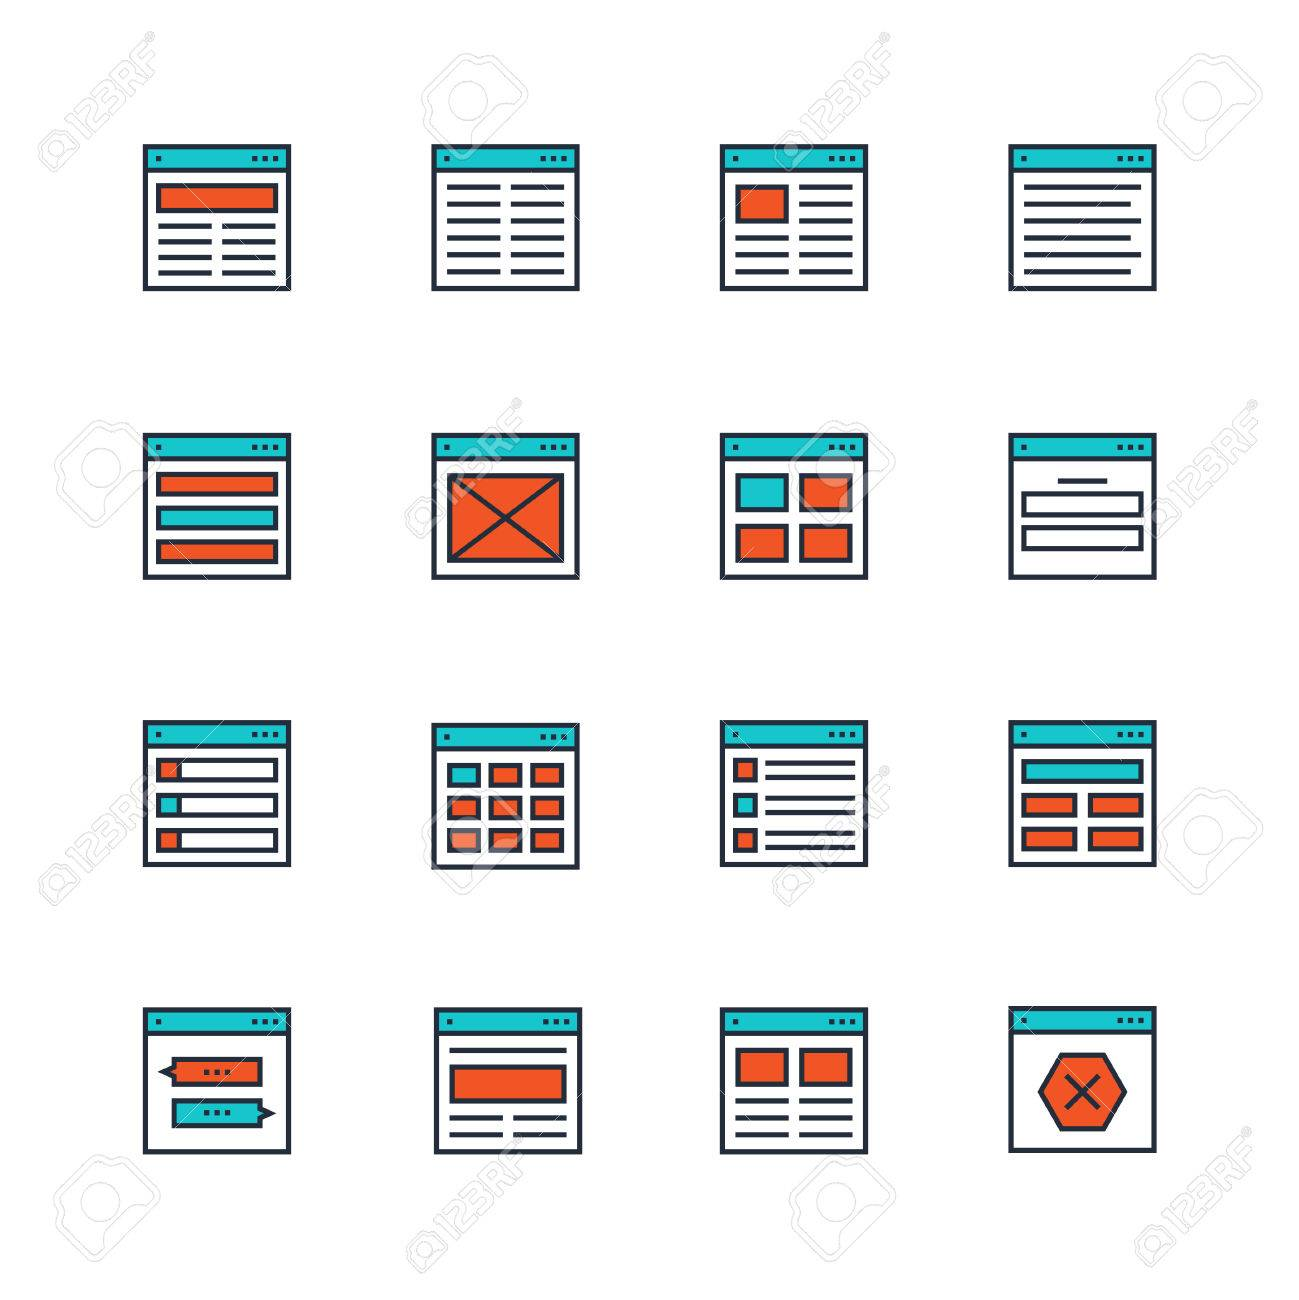 Website Or Application Wireframe Template And Design Layout Colored ...